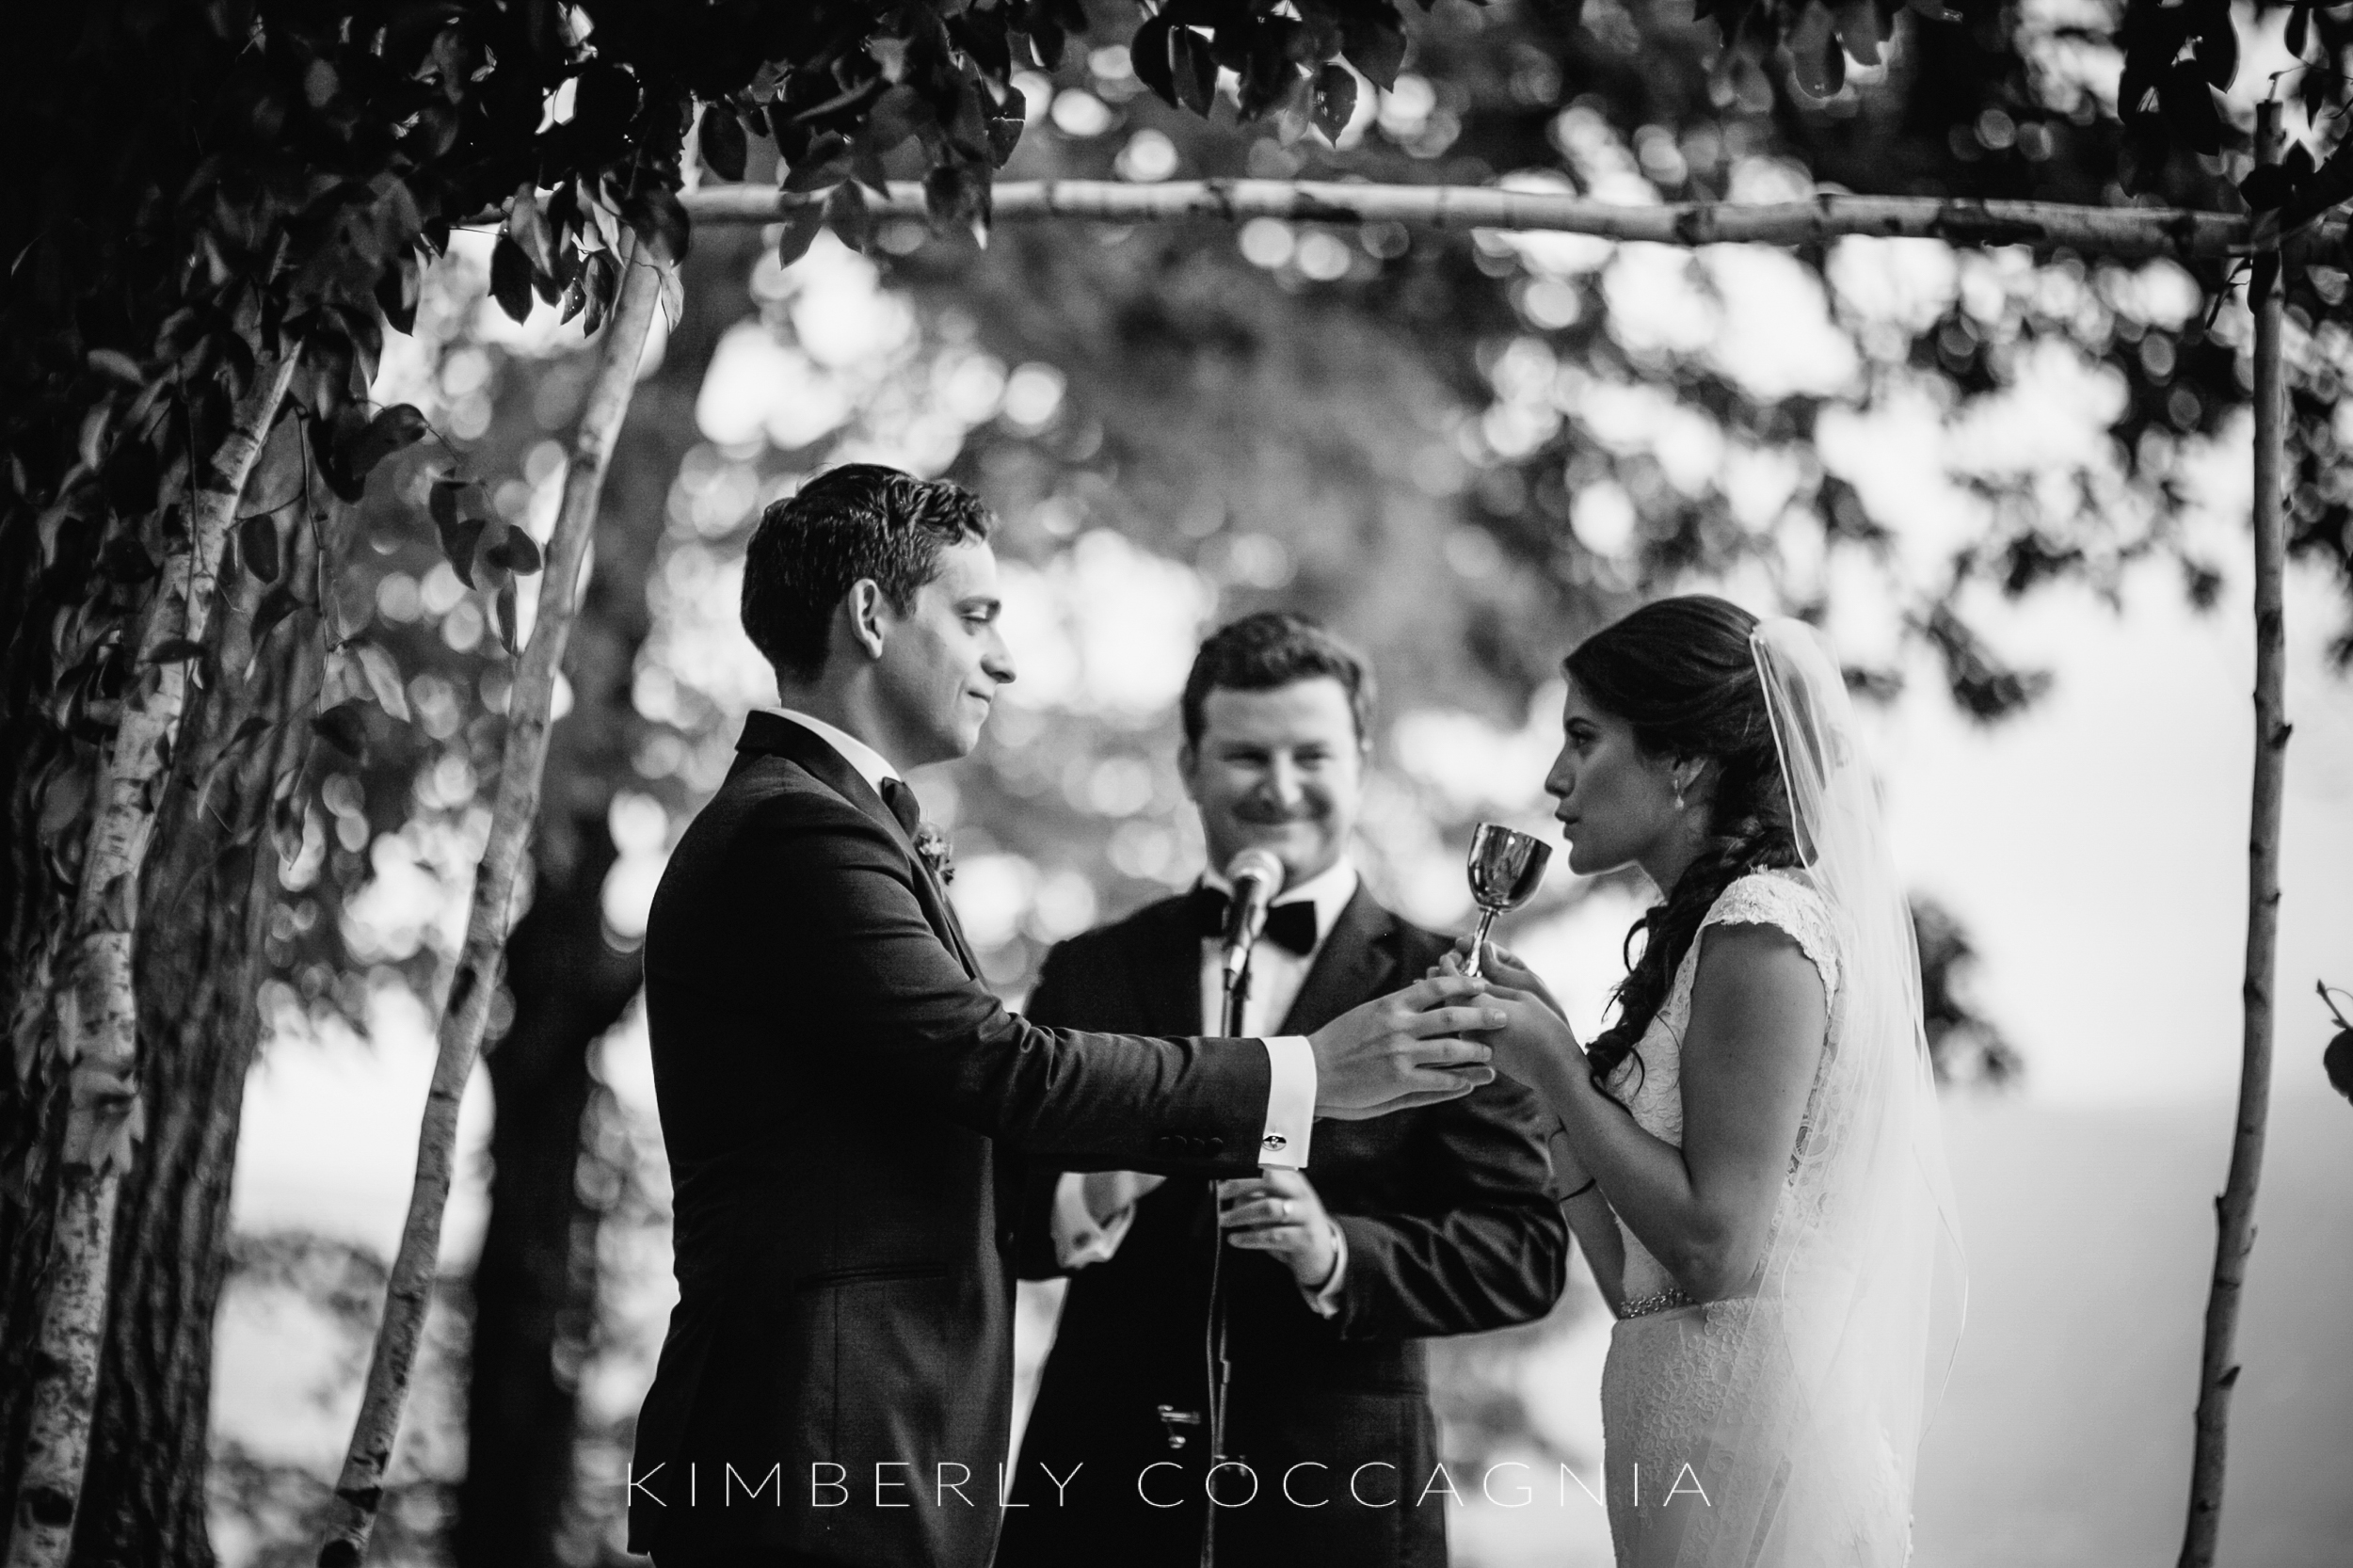 Kimberly+Coccagnia+Hudson+Valley+Wedding+Photographer-73.JPG